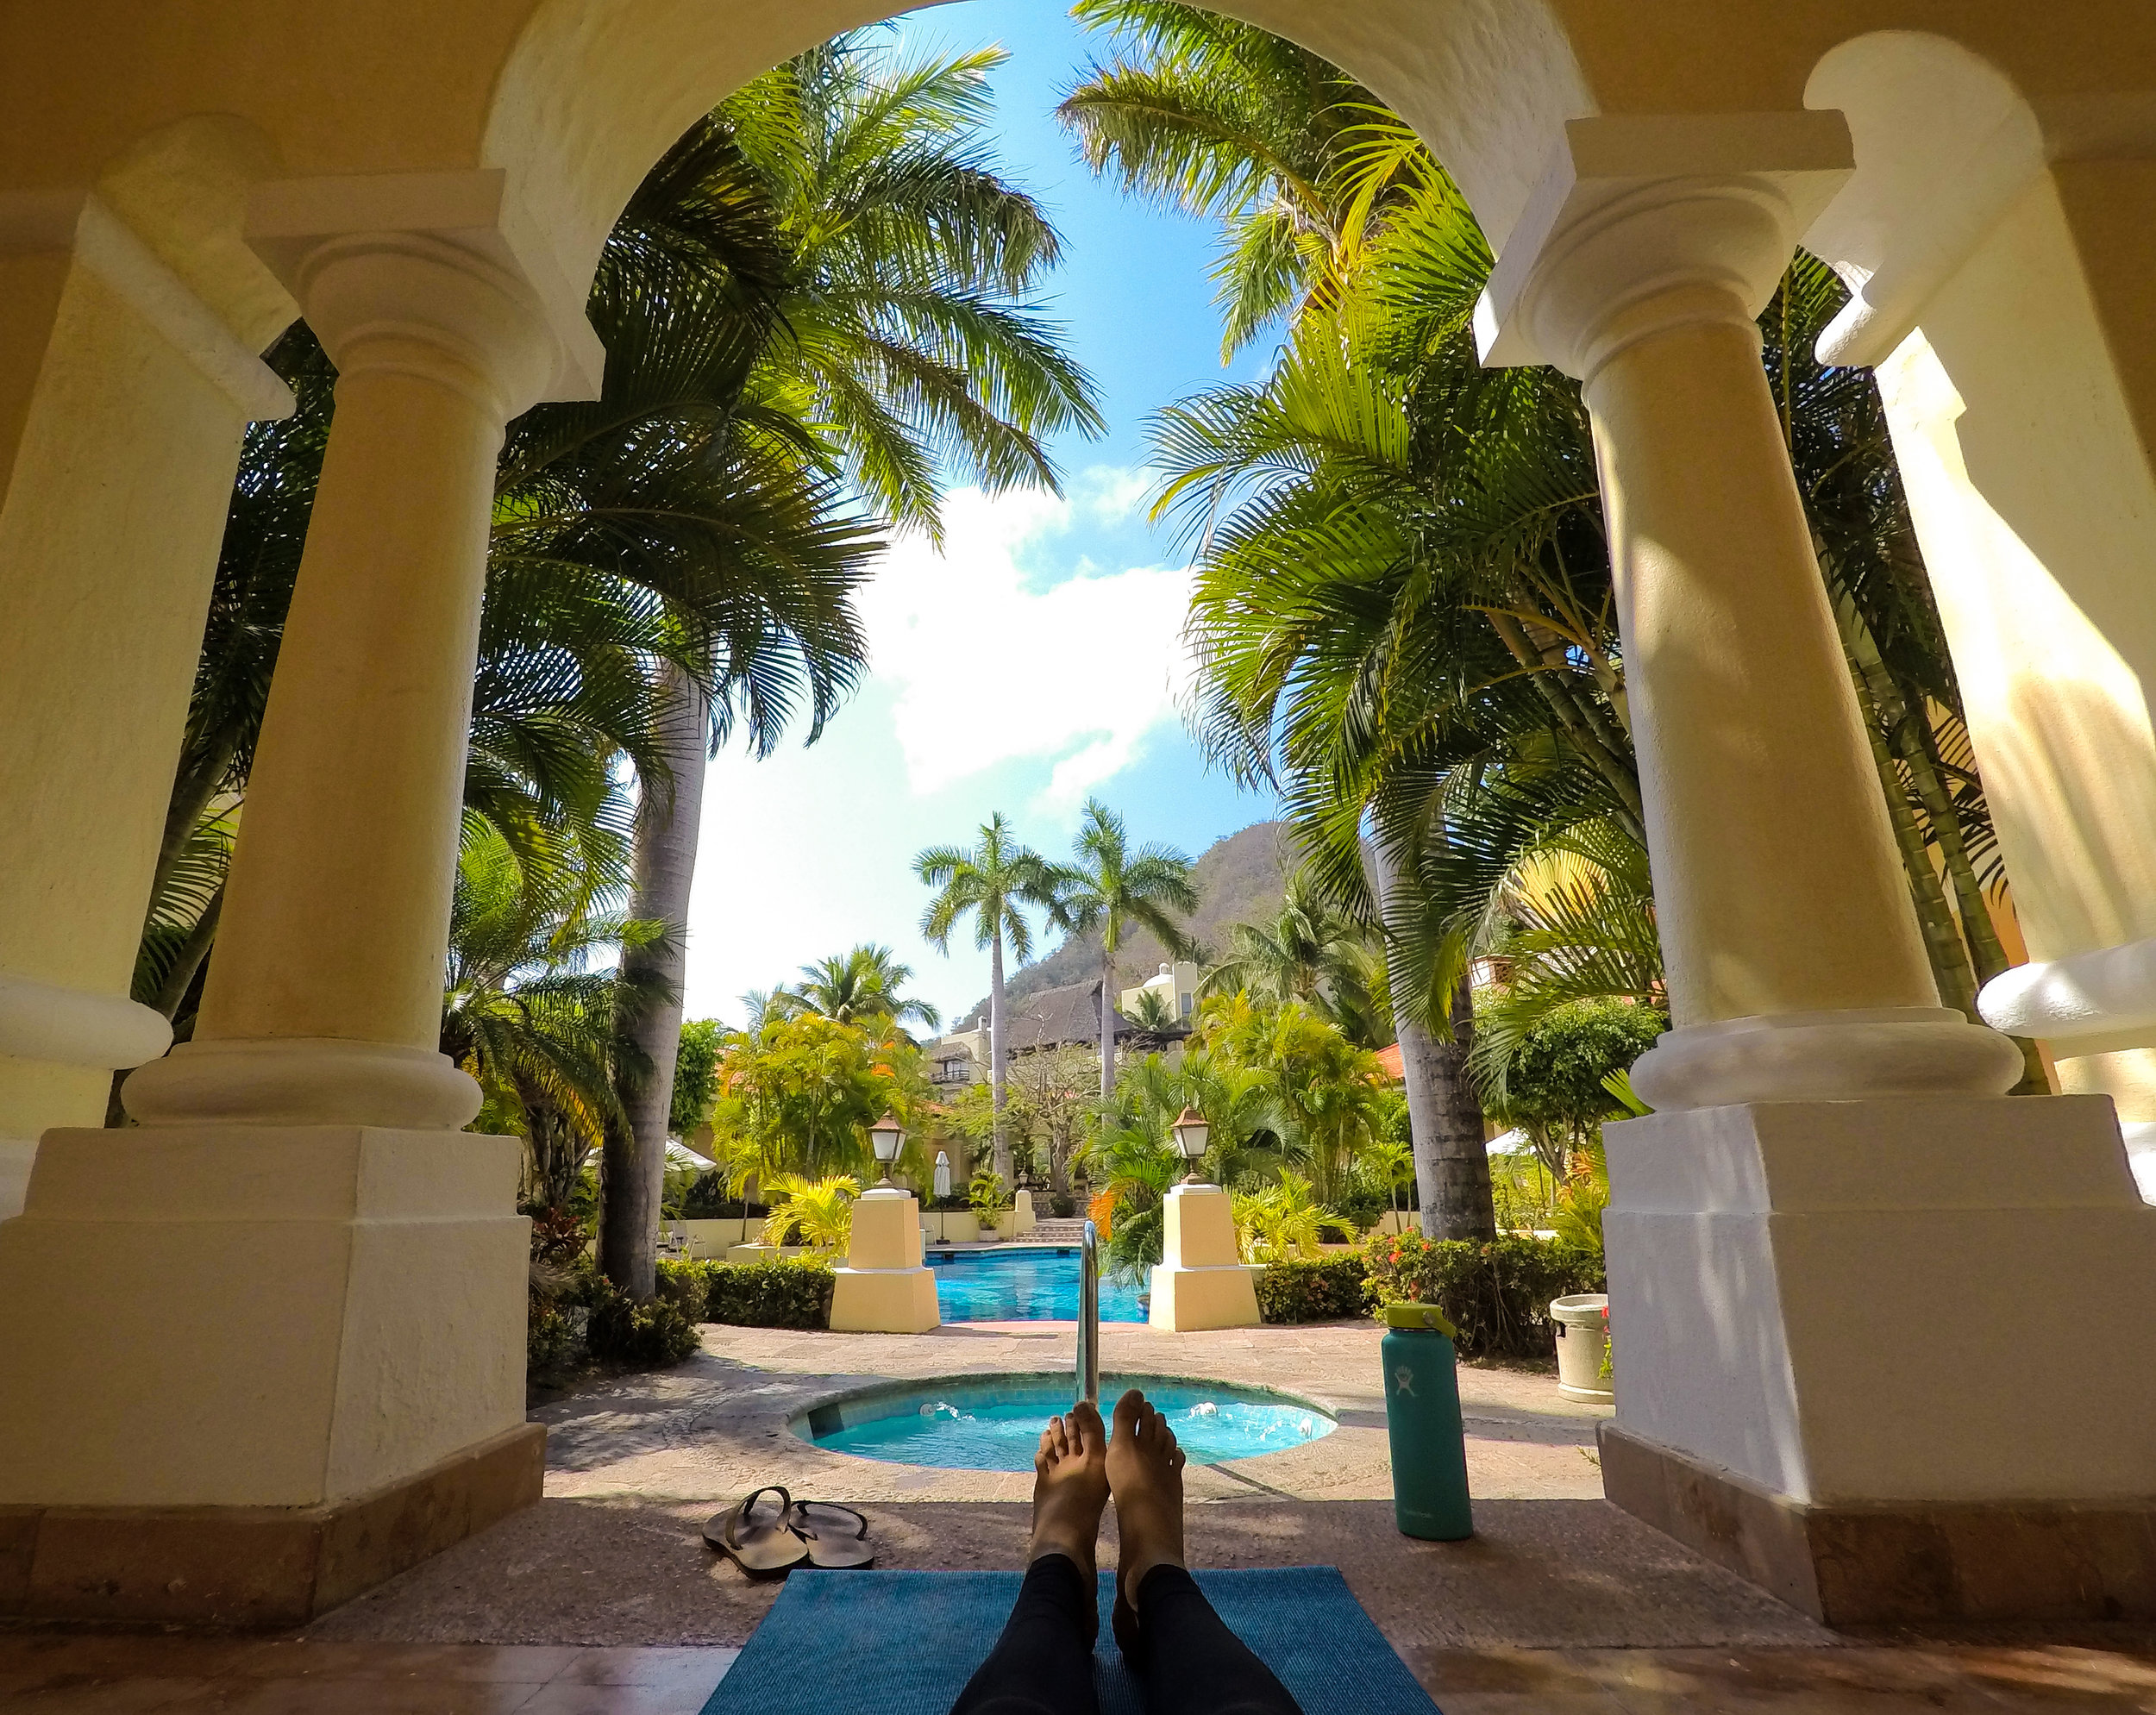 Morning yoga by the pool.